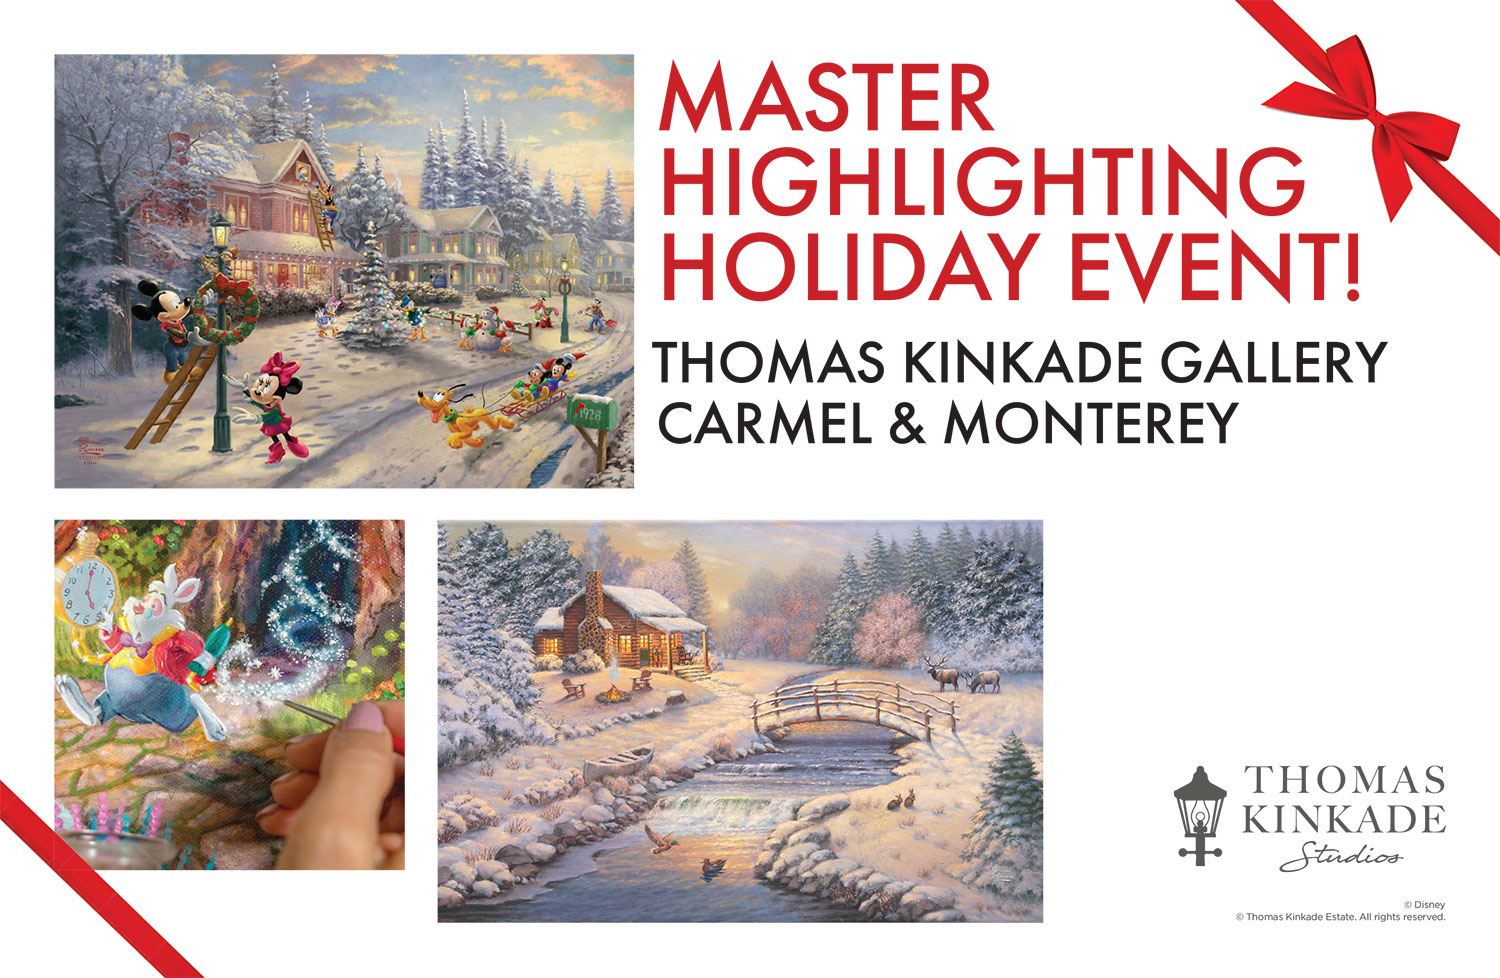 Master Highlighting Holiday Event, Carmel & Monterey